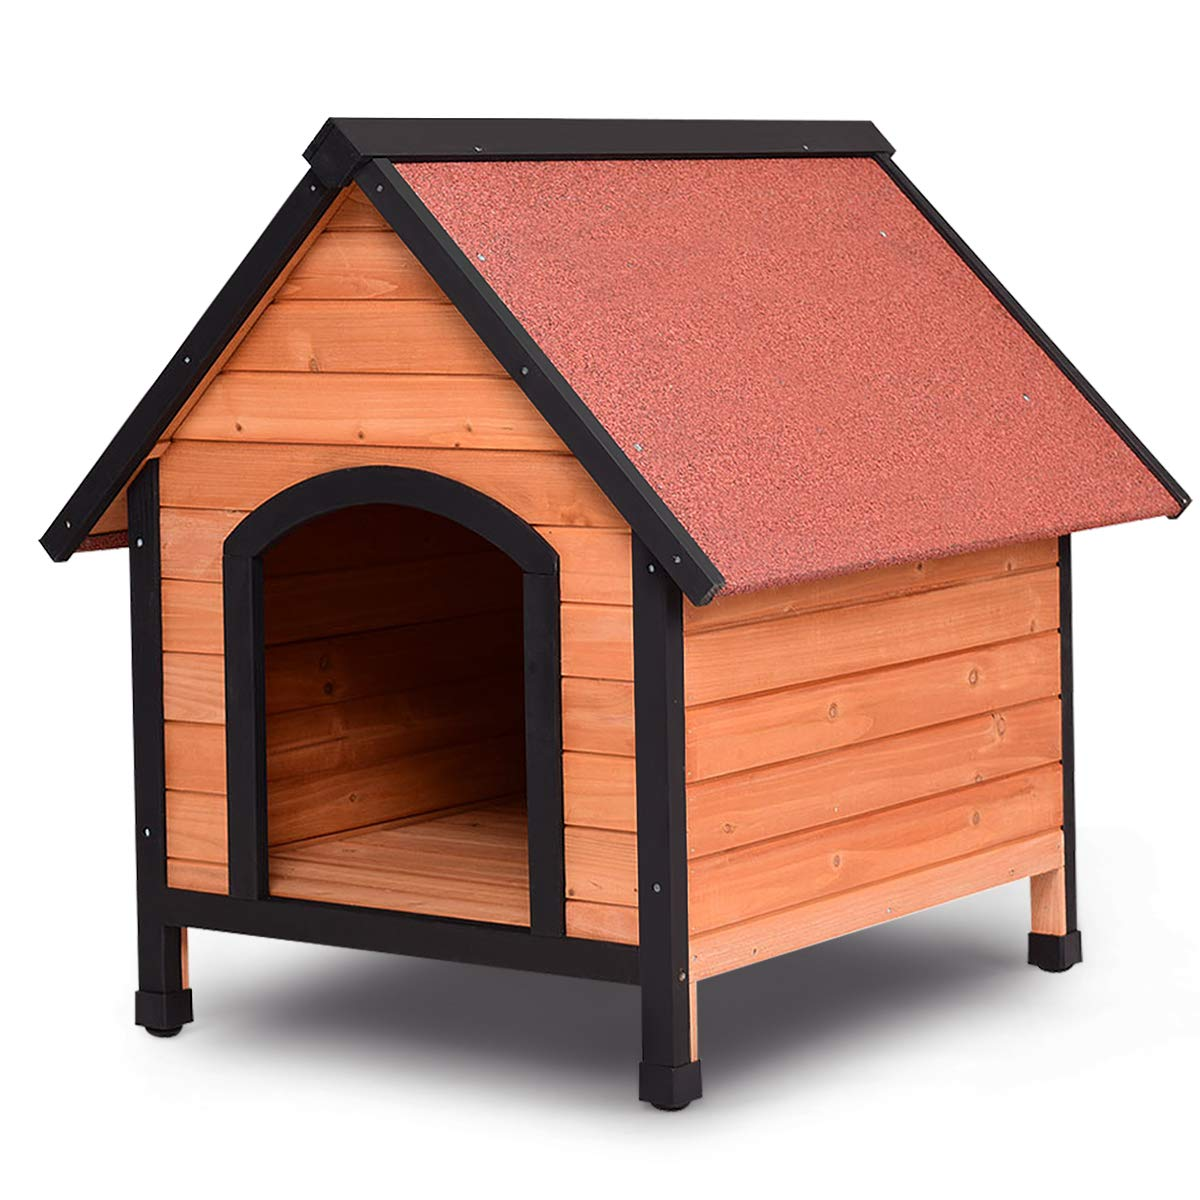 Tangkula Dog House, Wooden Pet Kennel, Outdoor Weather Waterproof Pet House, Natural Wooden Dog House Home with Reddish Brown Roof, Pet Dog House (Large)